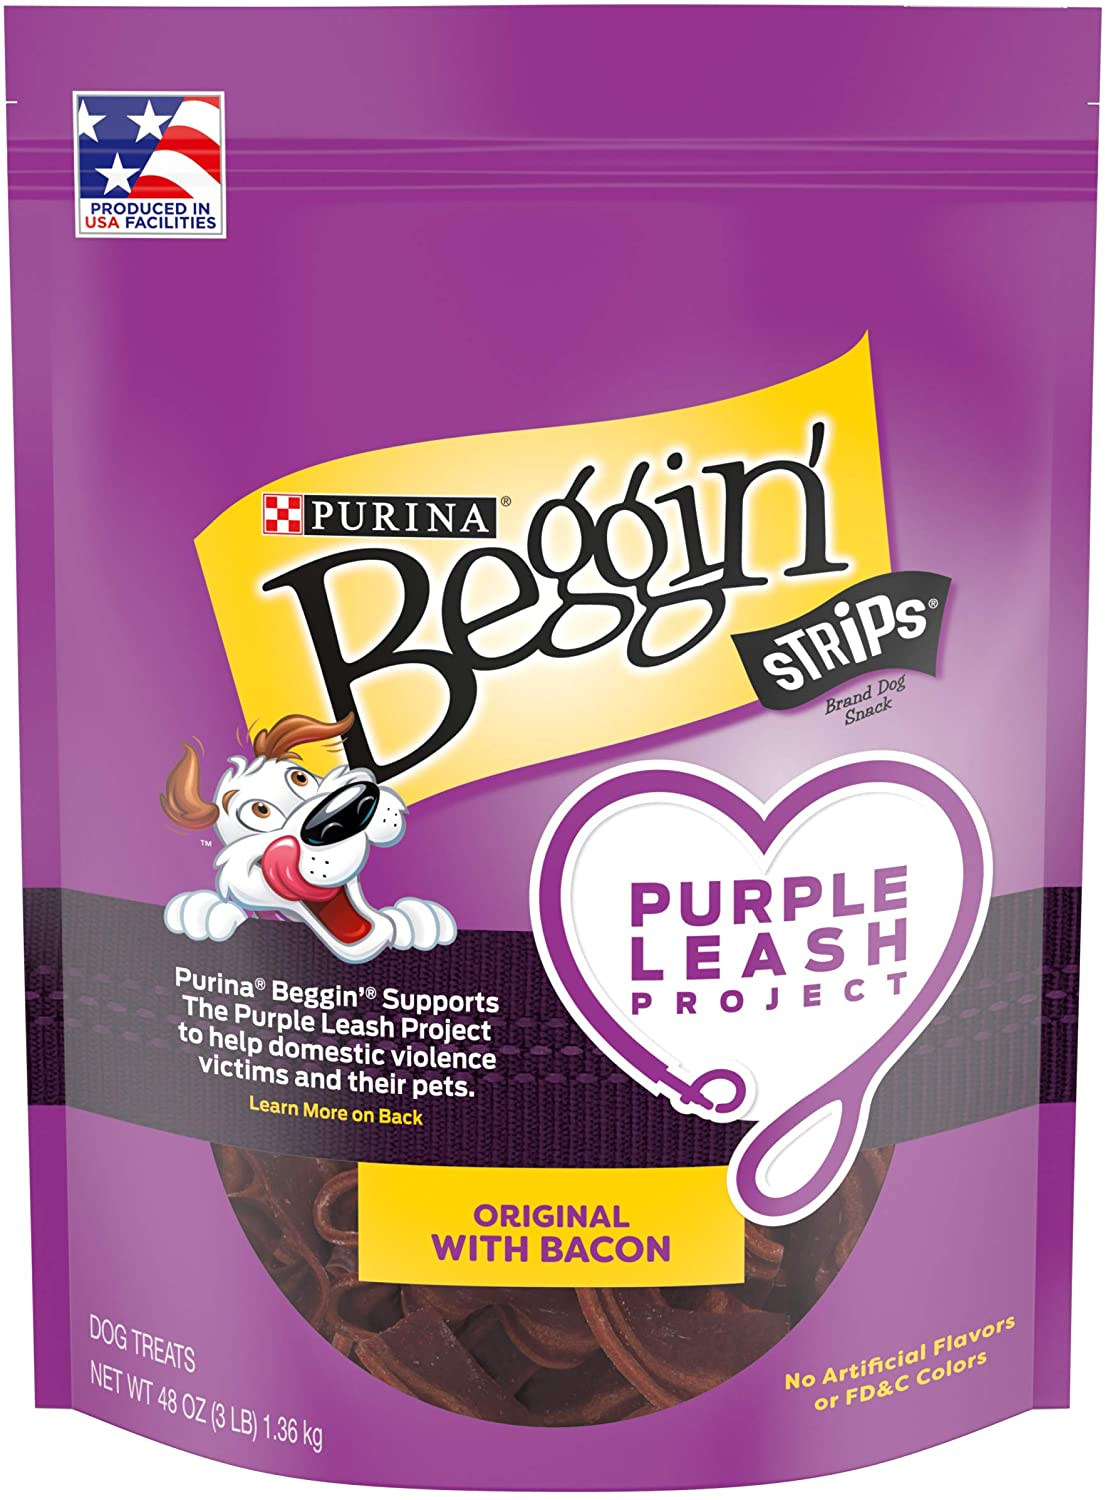 Purina Beggin' Strips Dog Treats Made in USA Facilities Adult Dog Training Treats - 48oz Pouches